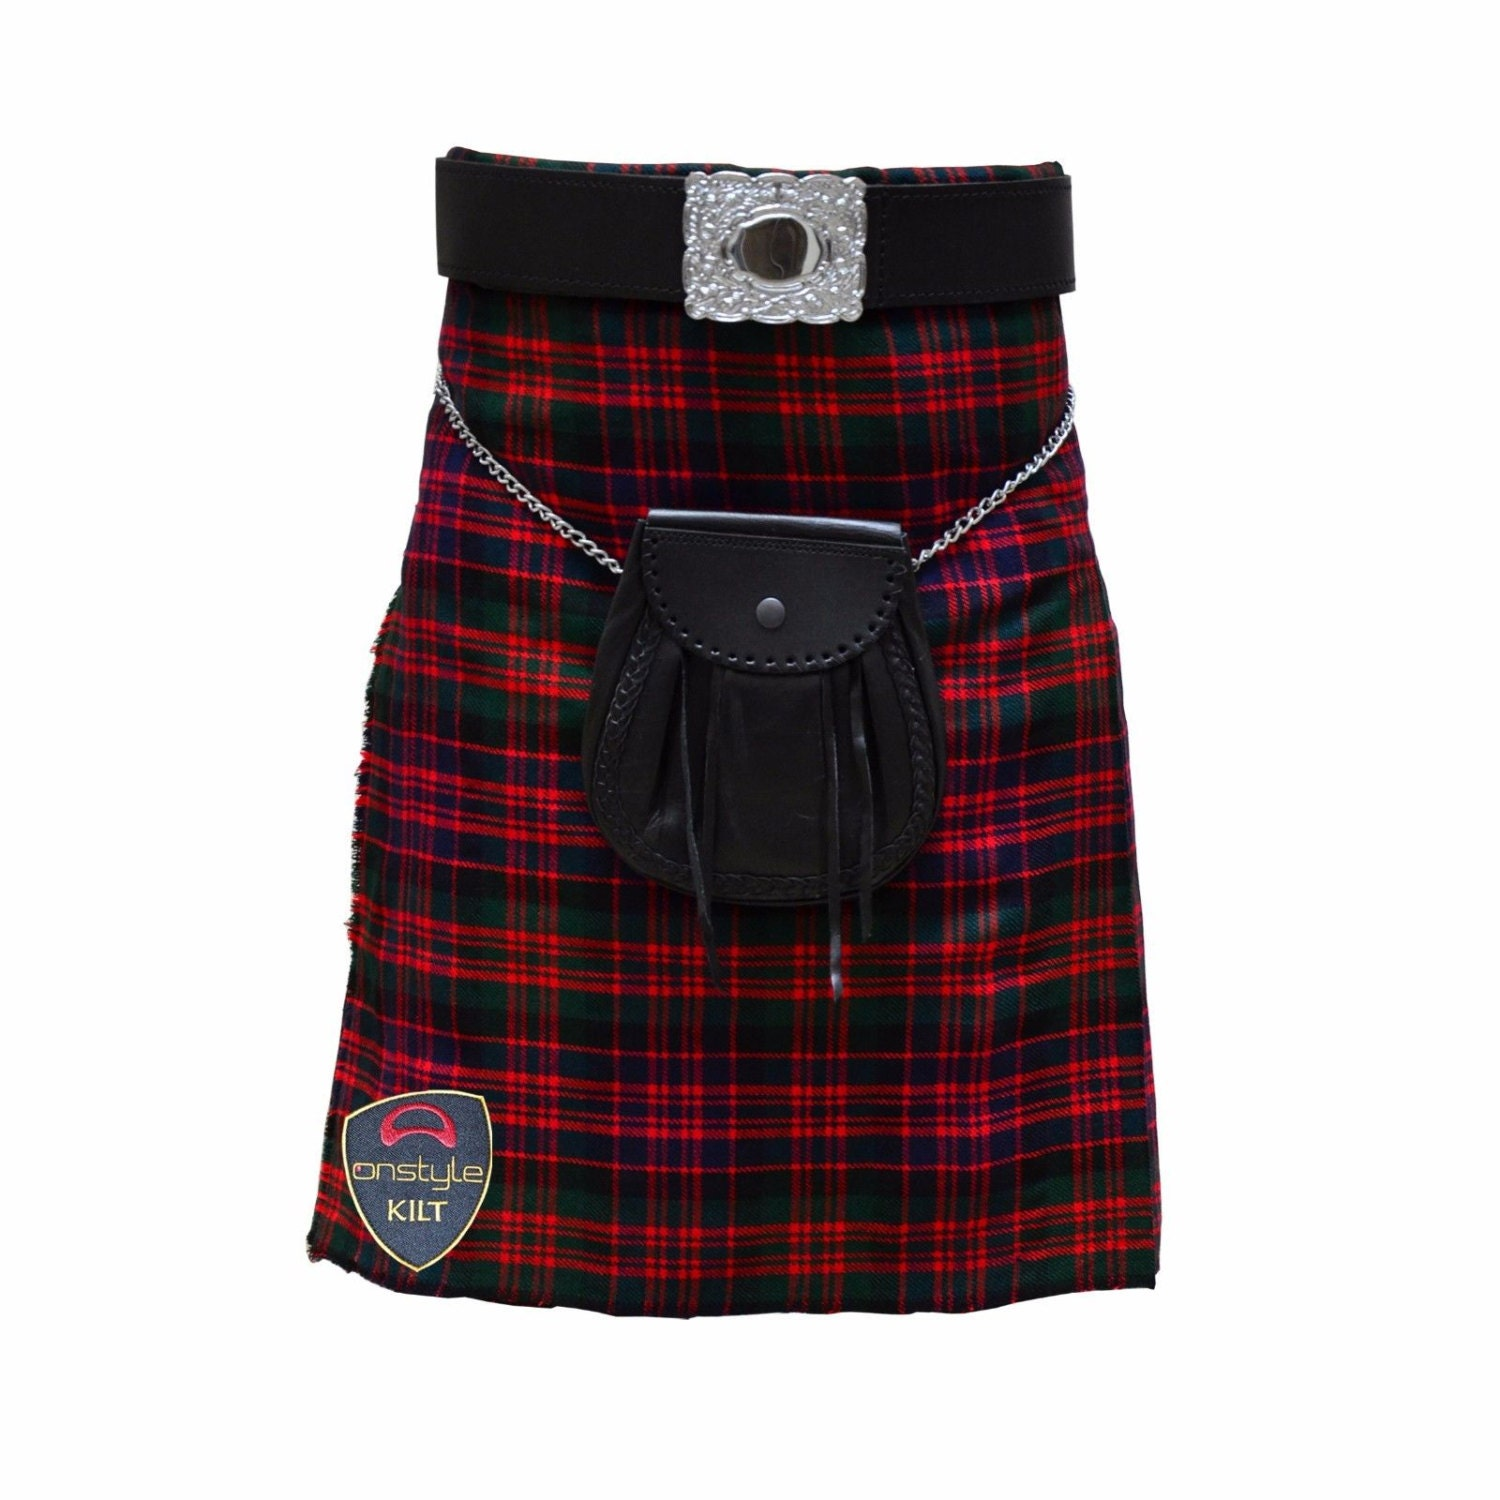 Onstyle Scottish Highland Active Men Utility Sports Black Watch Tartan Kilts pgD586Lz